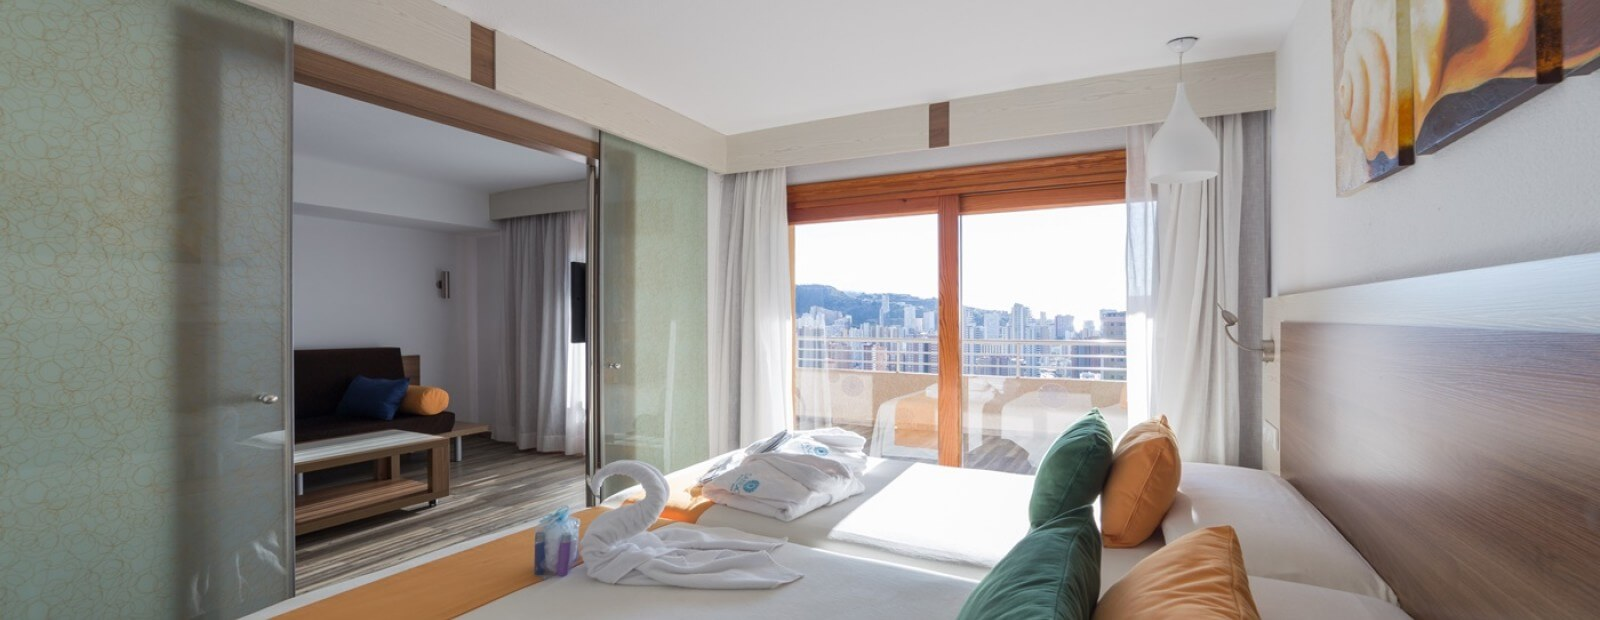 Views of the suite at Sandos Benidorm Suites